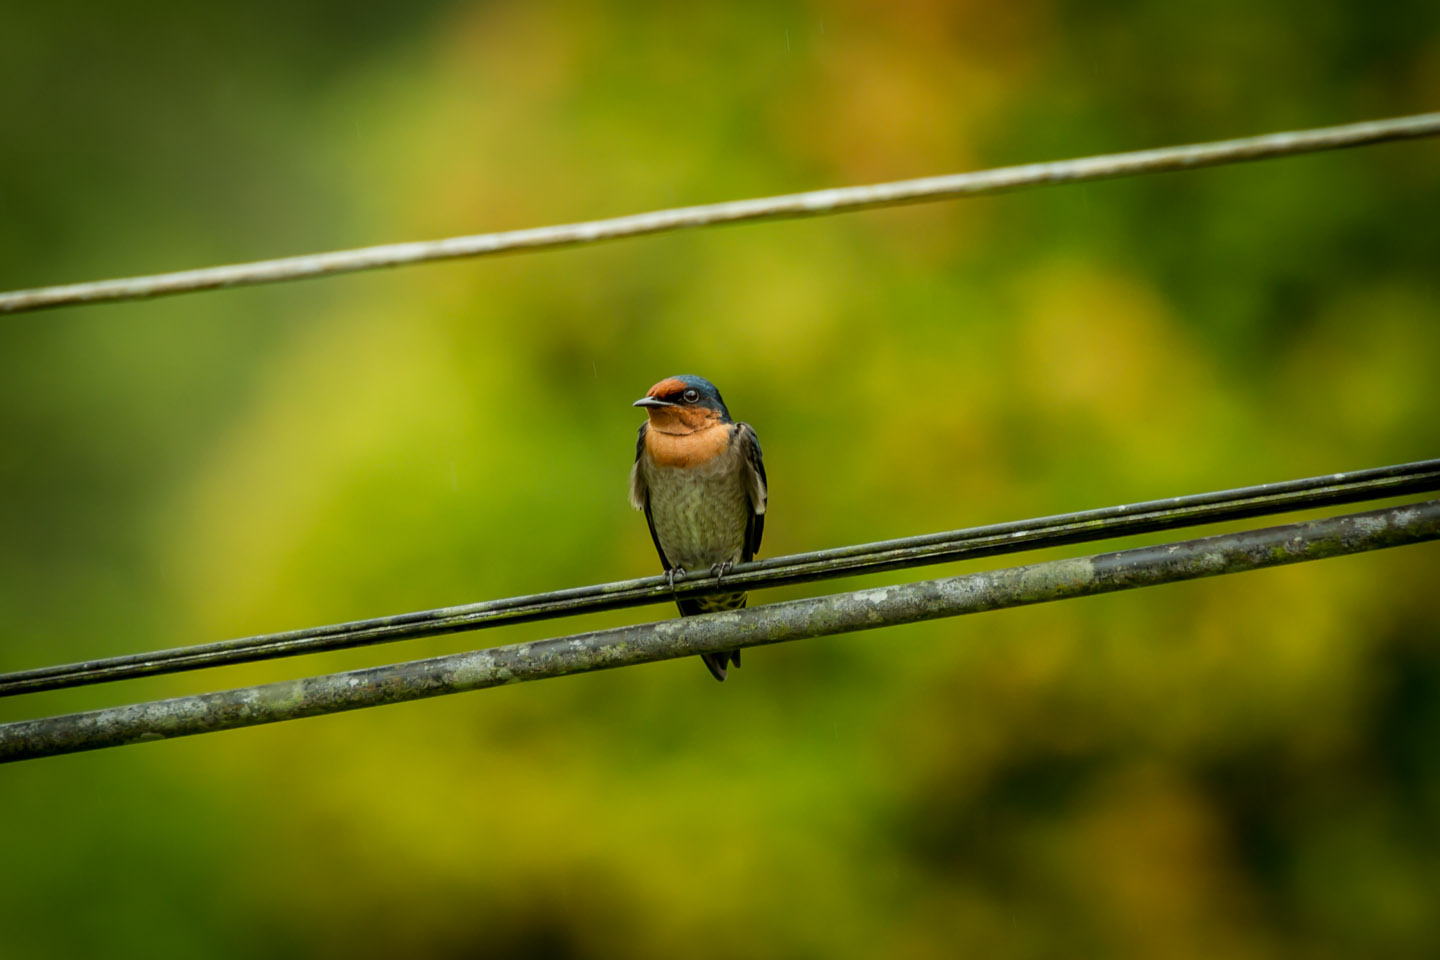 Pacific Swallow Bird on a power line at Danum Valley Field Center Conservation Area Sabah Borneo Malaysia